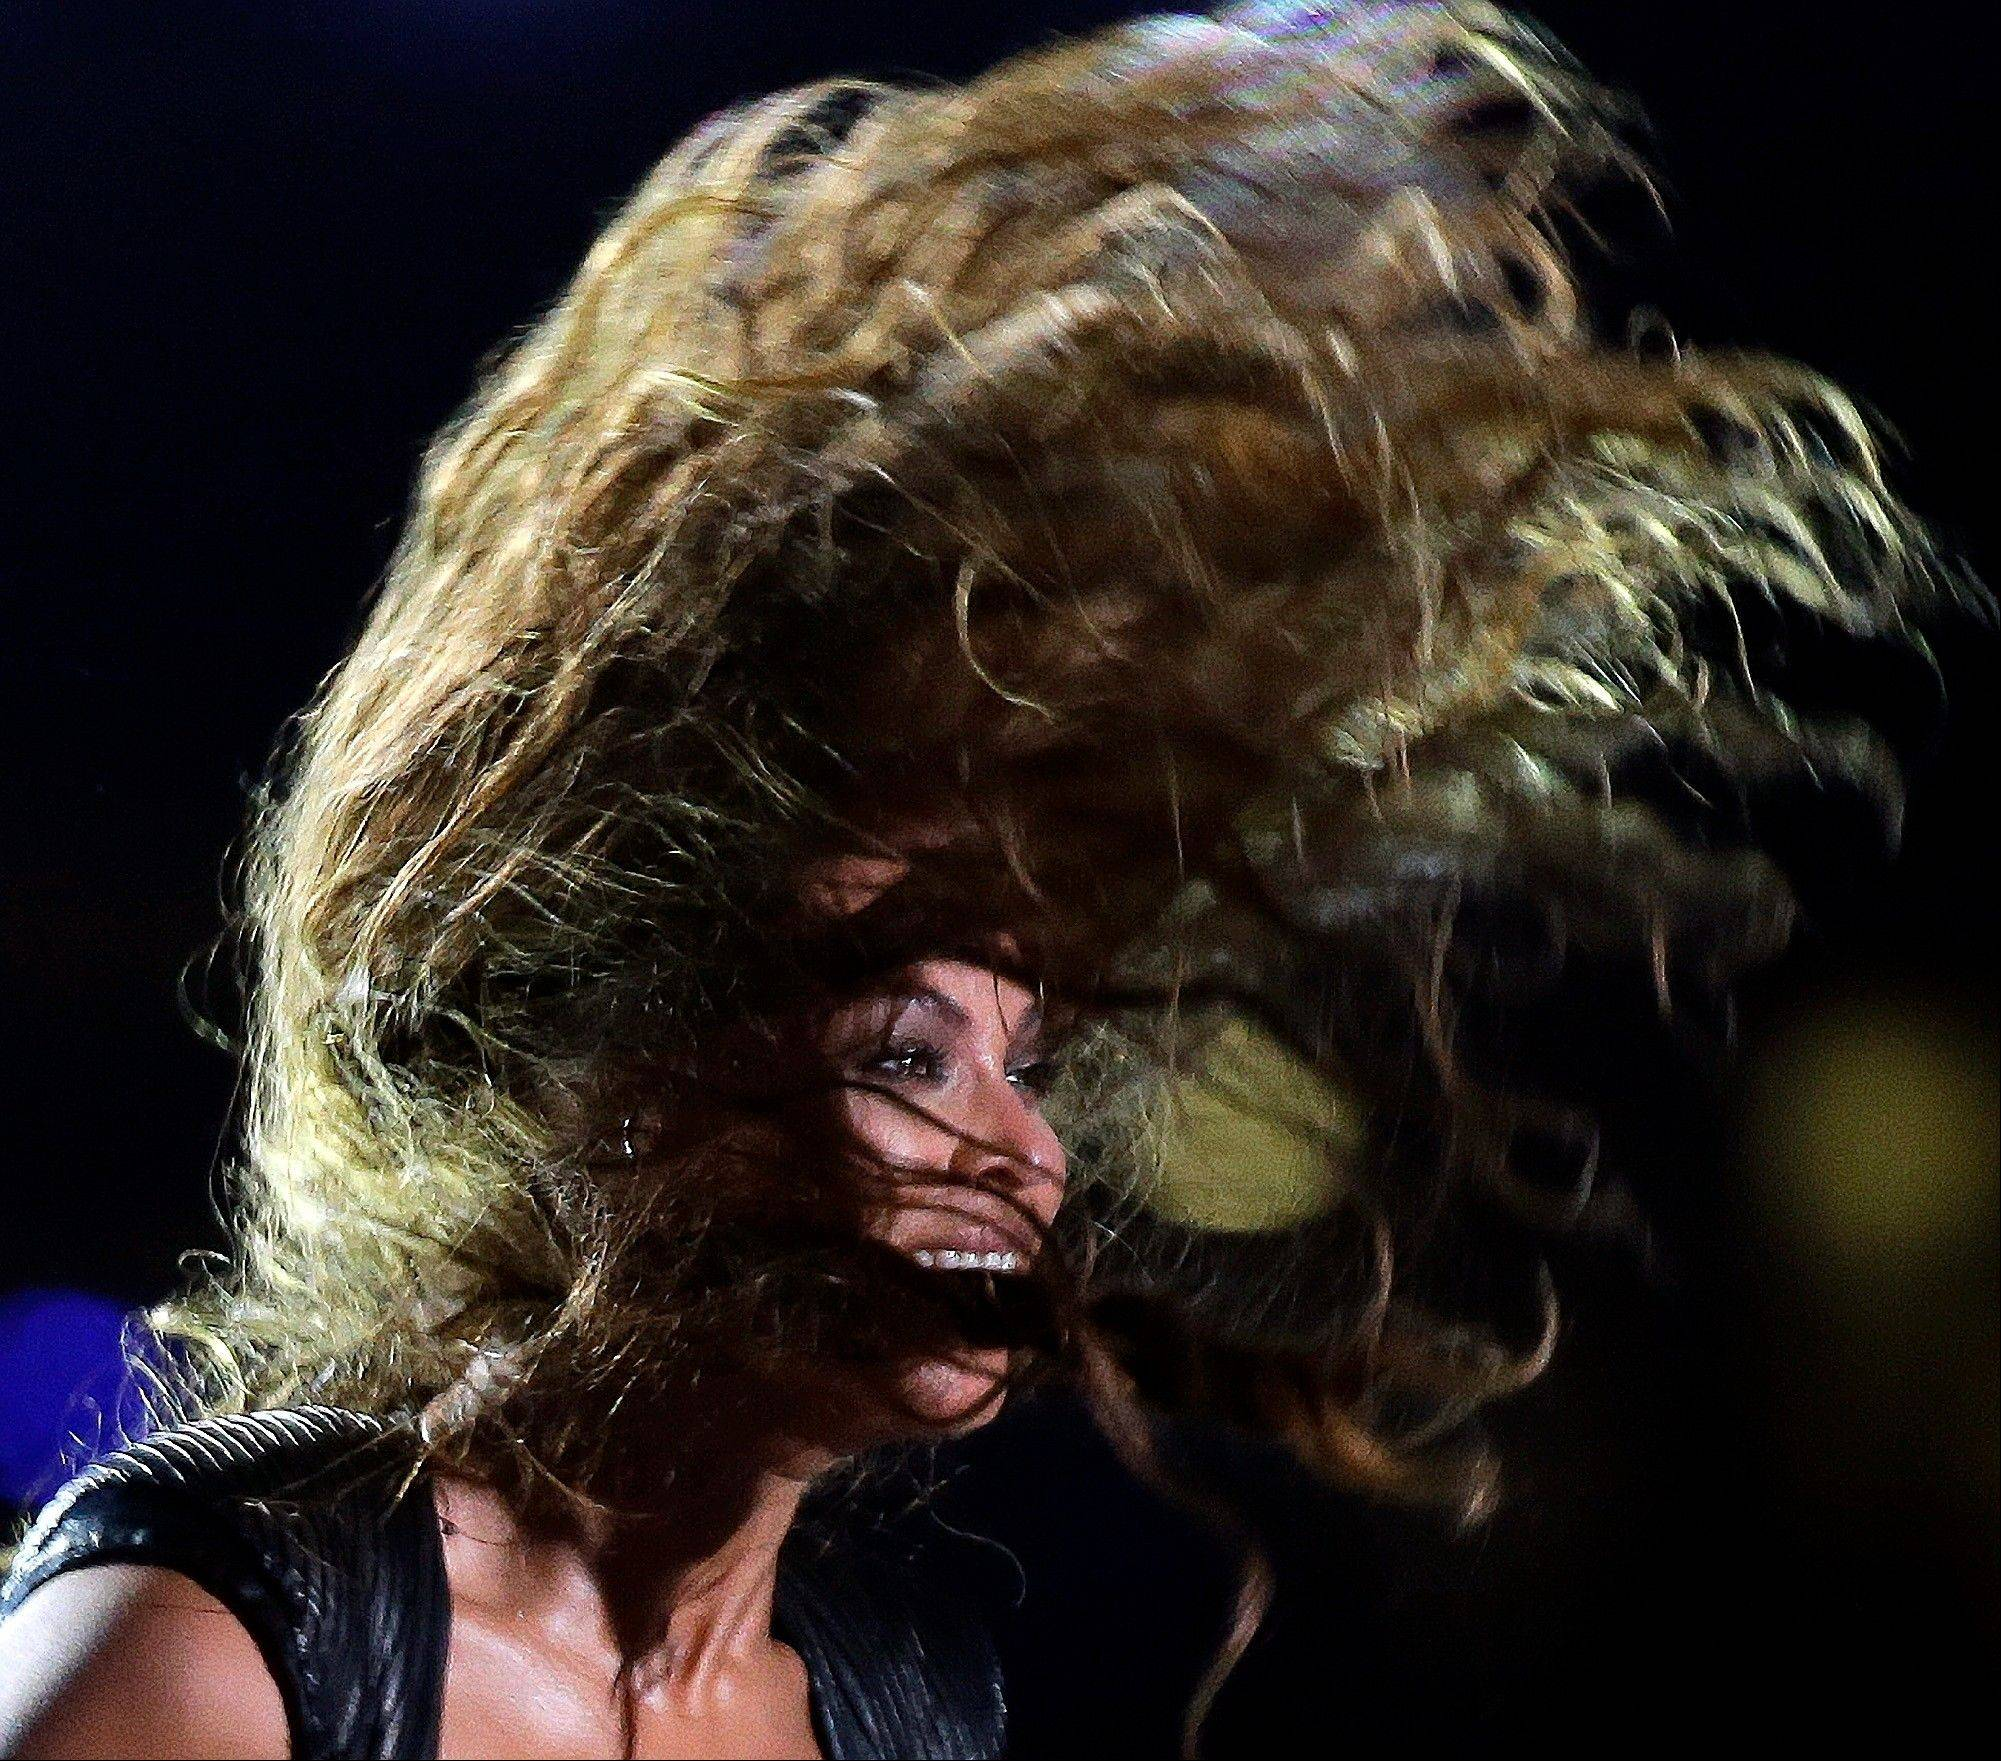 Beyonc� performs during the halftime show of the NFL Super Bowl XLVII football game.